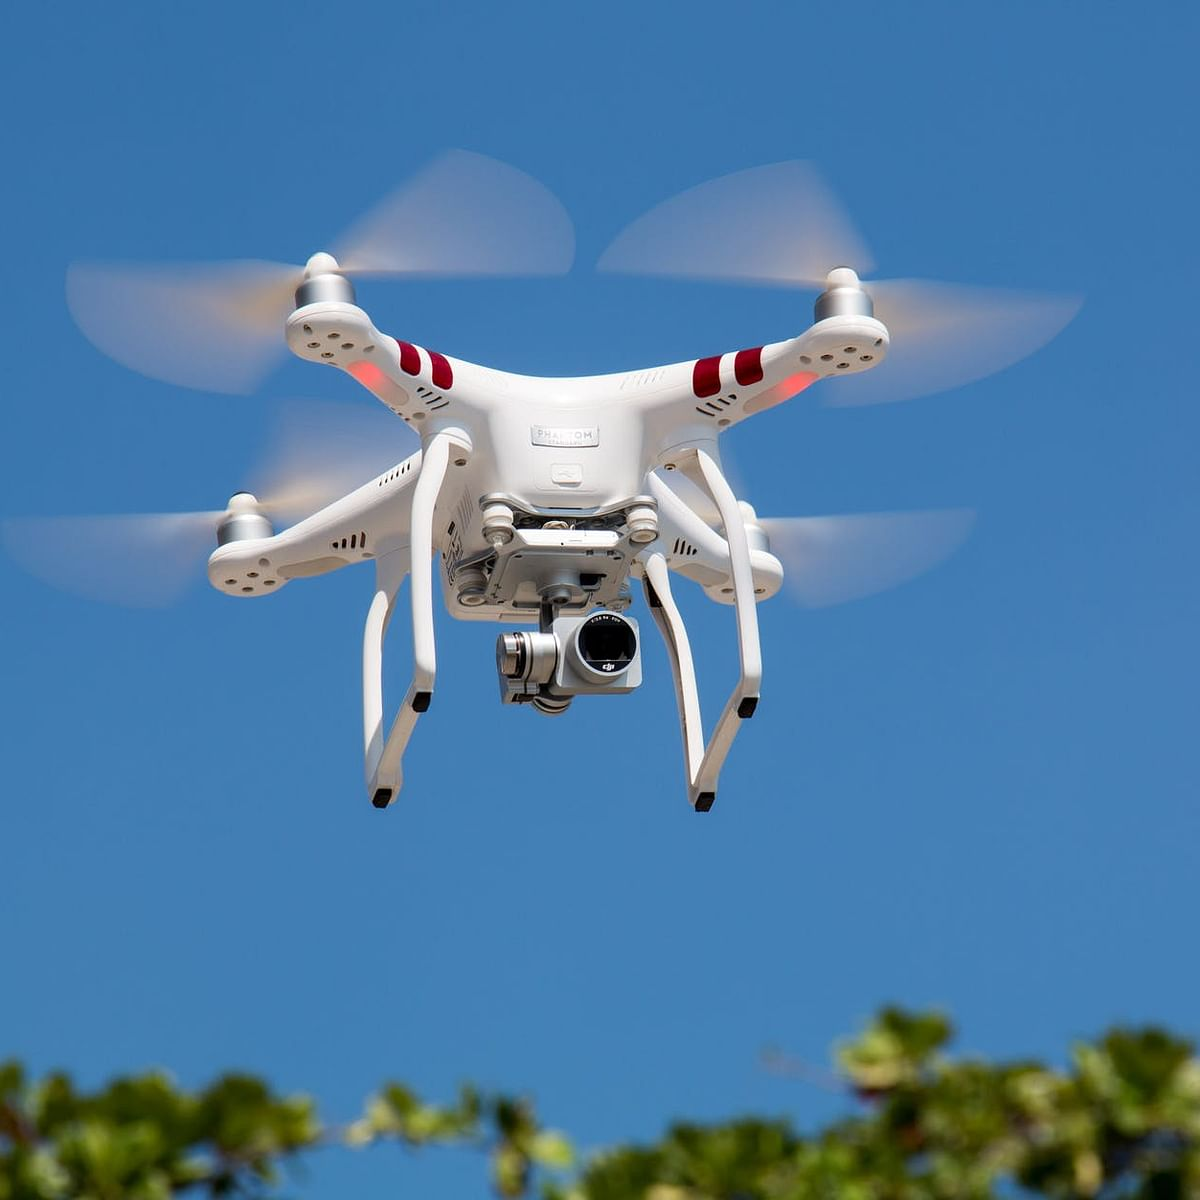 Days after Jammu attack, govt issues draft rules to ensure ease of using drones in India